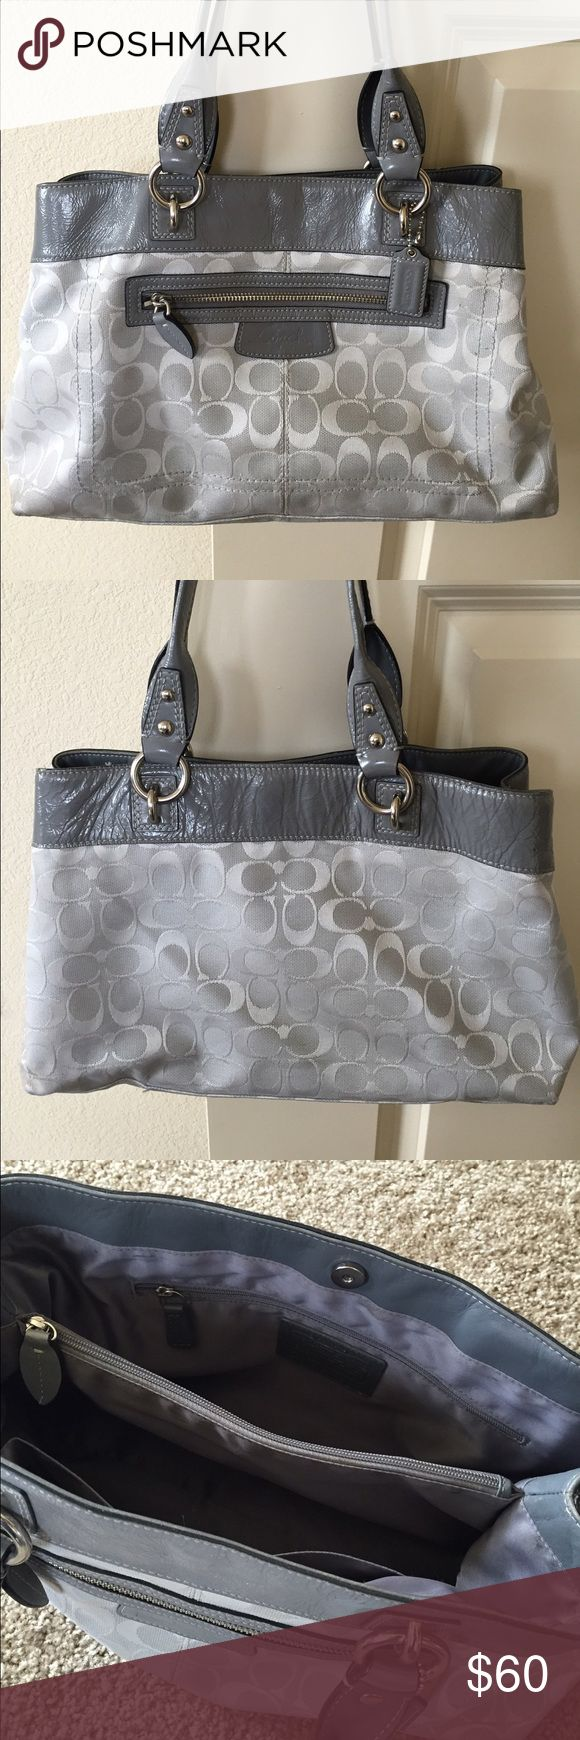 Gray Coach Purse Nice, clean gray Coach purse. I purchased this purse on Poshmark several months ago, got some great use out of it, and am now ready to let someone else enjoy it. Coach Bags Shoulder Bags